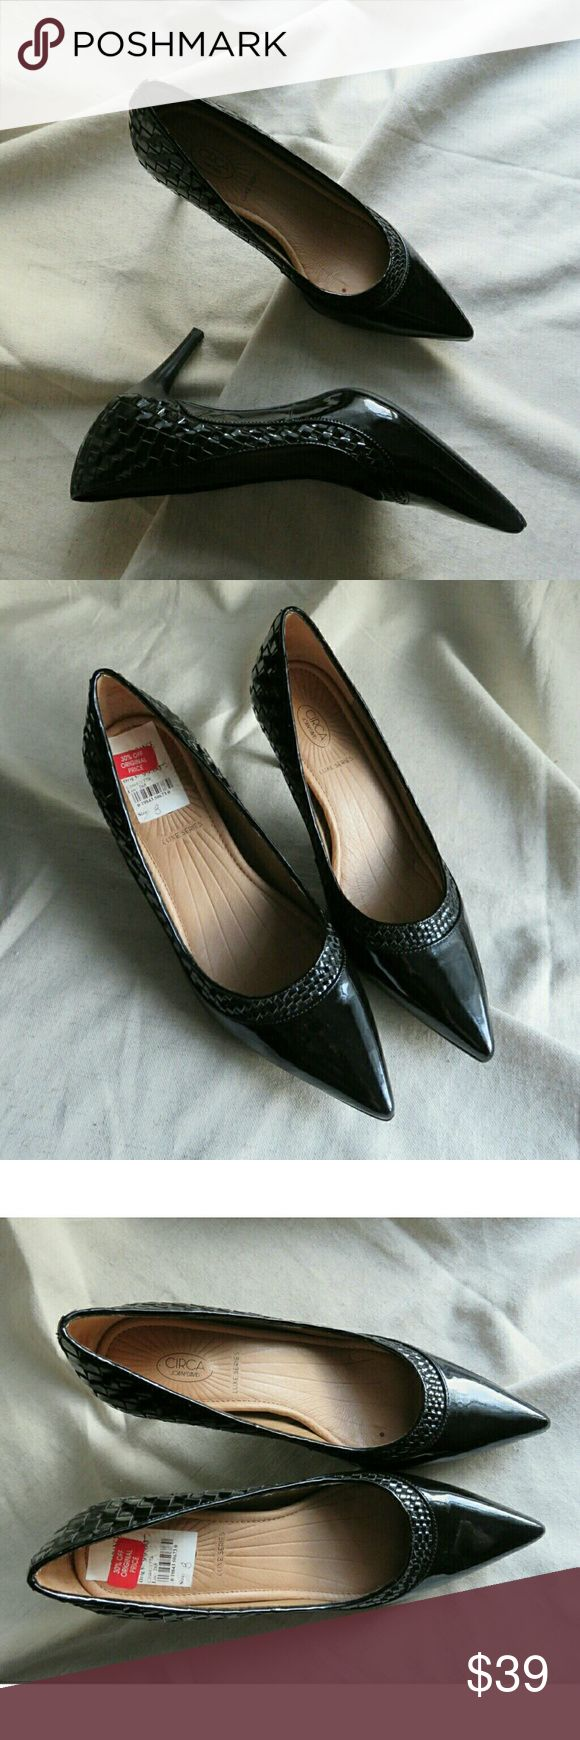 "NWT Joan & David Woven Patent Pumps Black 8 Gorgeous black pumps/ heels from Circa Joan & David, new with tags from Macy's. Stunning woven leather detail around sides and braided around toes. Size 8, genuine patent leather, comfort insoles, heel measures 3"" tall. Packed carefully and shipped fast! Thanks so much, Jen #777 Joan & David Shoes Heels"